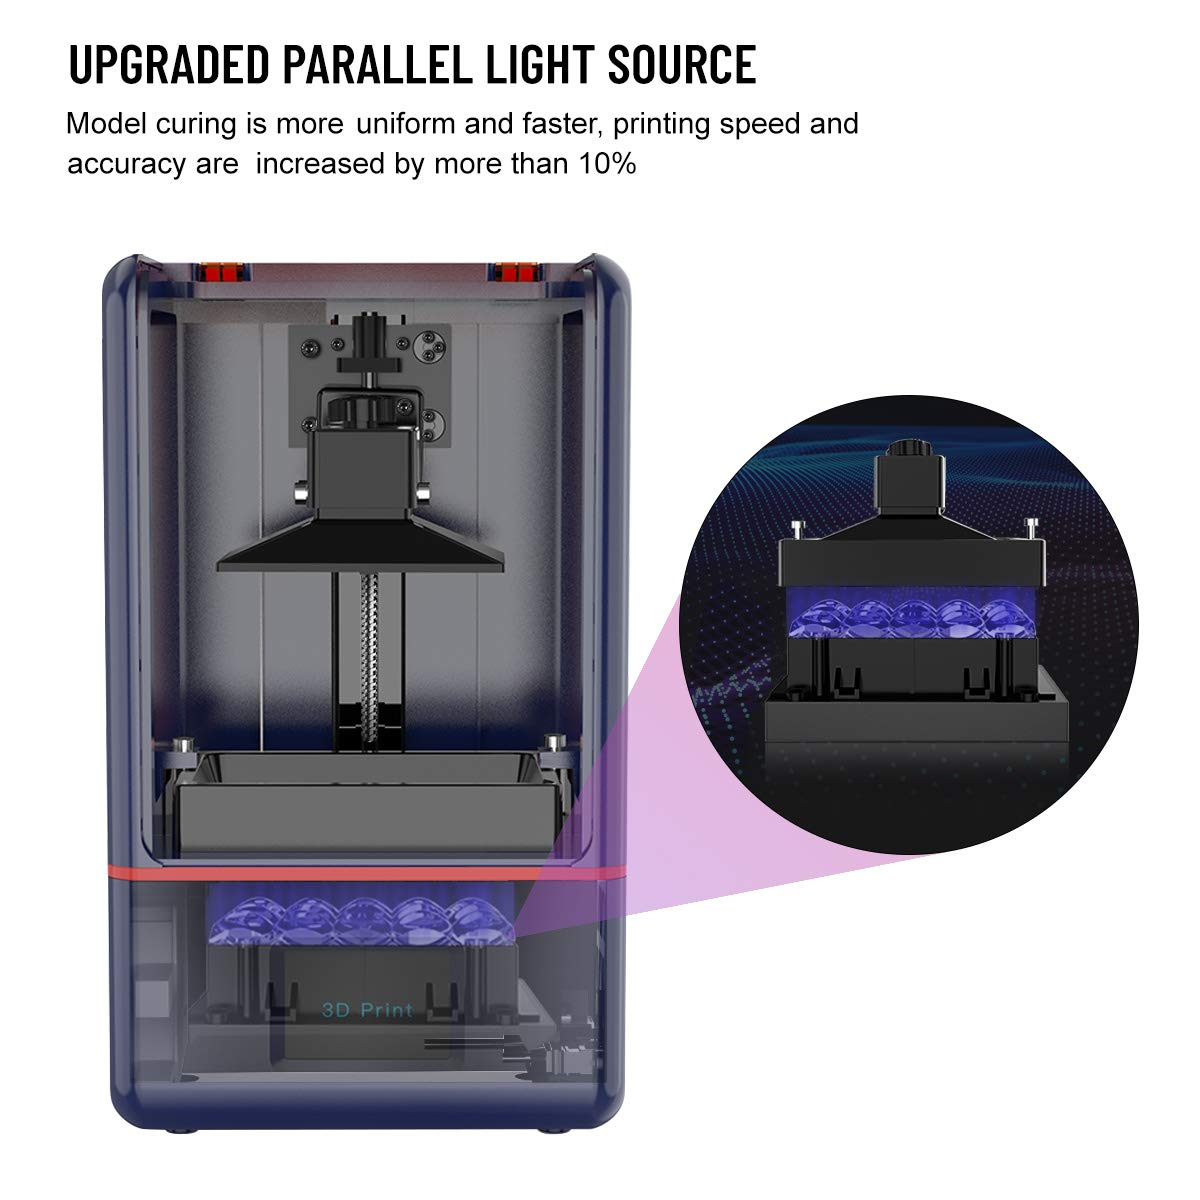 x 2.36in Z-axis Dual Linear Rail /& Off-line Print 4.72in Weistek LCD 3D Printer UV Photocuring 3D Printer with Parallel Matrix 405nm UV Light x 6.10in W 5.5inch 2K Screen Printing Size L H